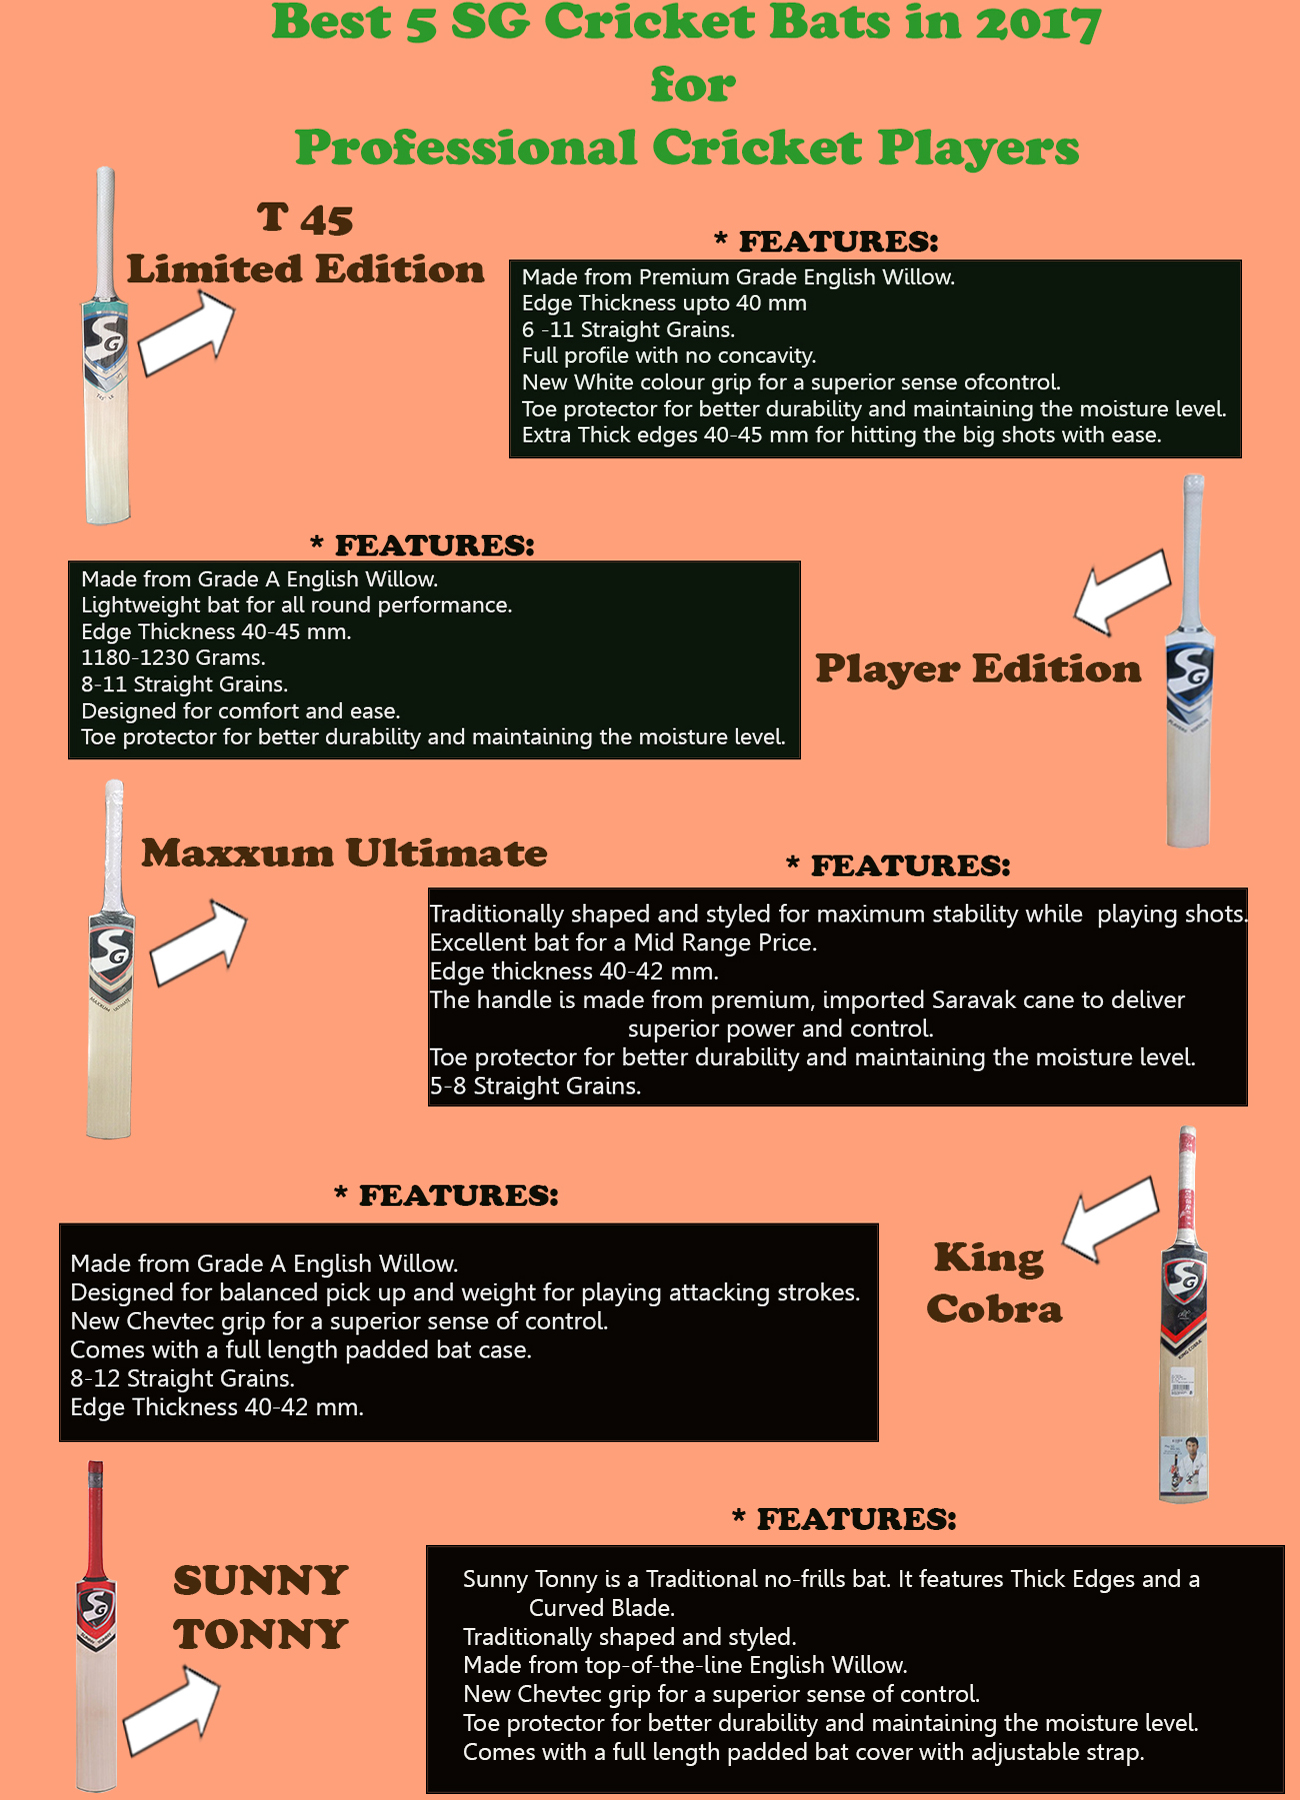 ALL SG CRICKET BAT IMAGES_1